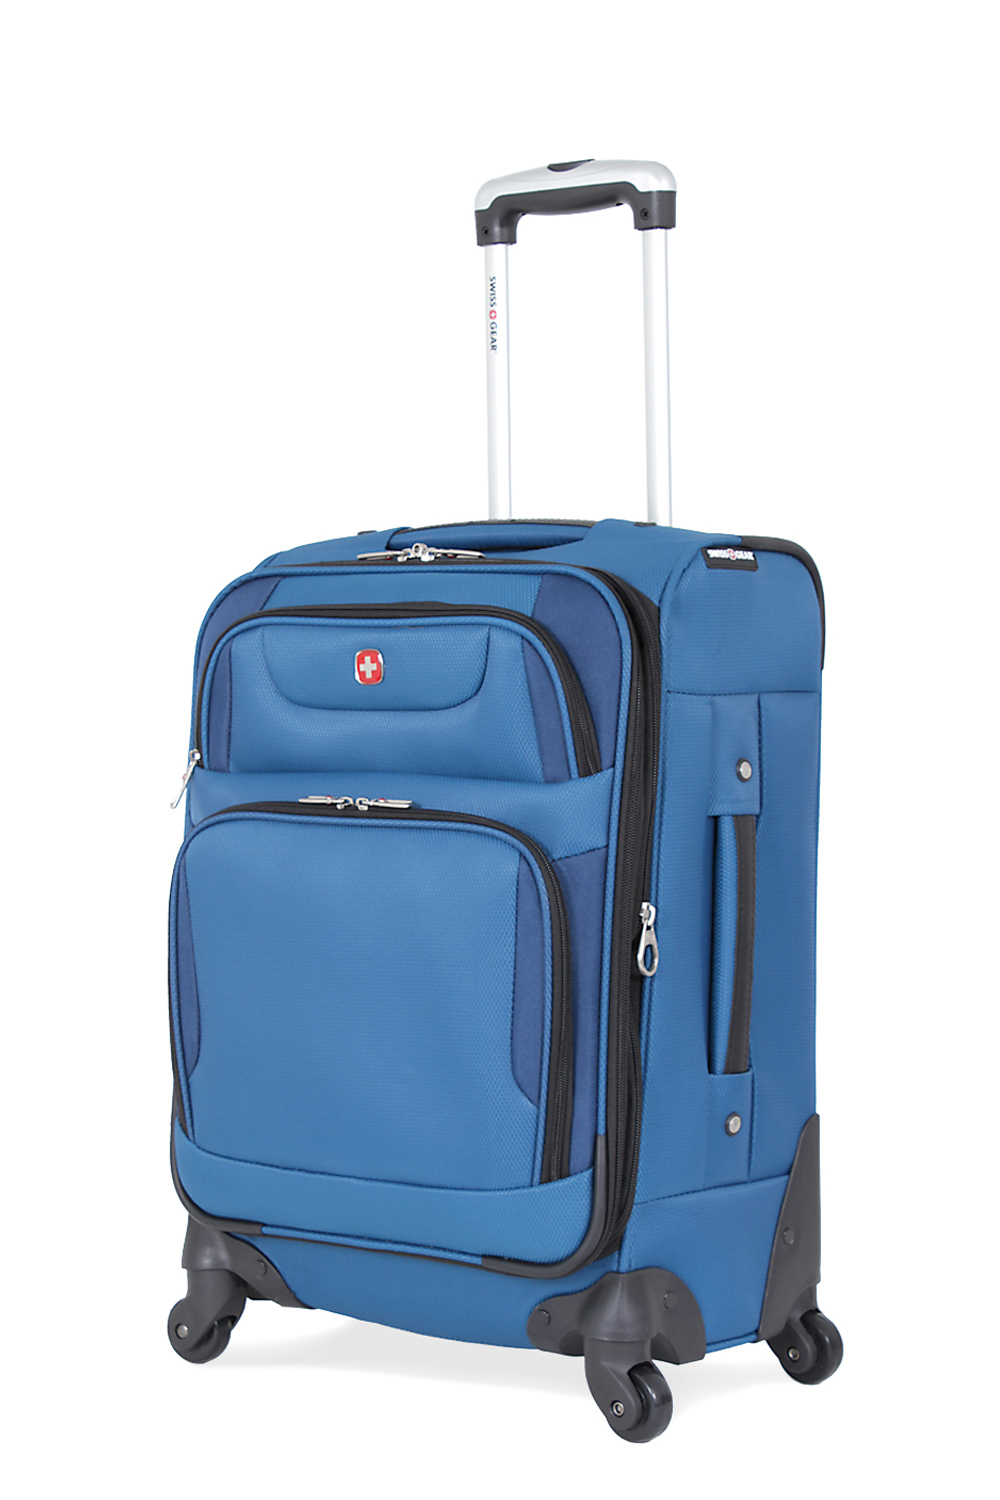 SWISSGEAR 7297 20 Expandable Carry-On Spinner Luggage